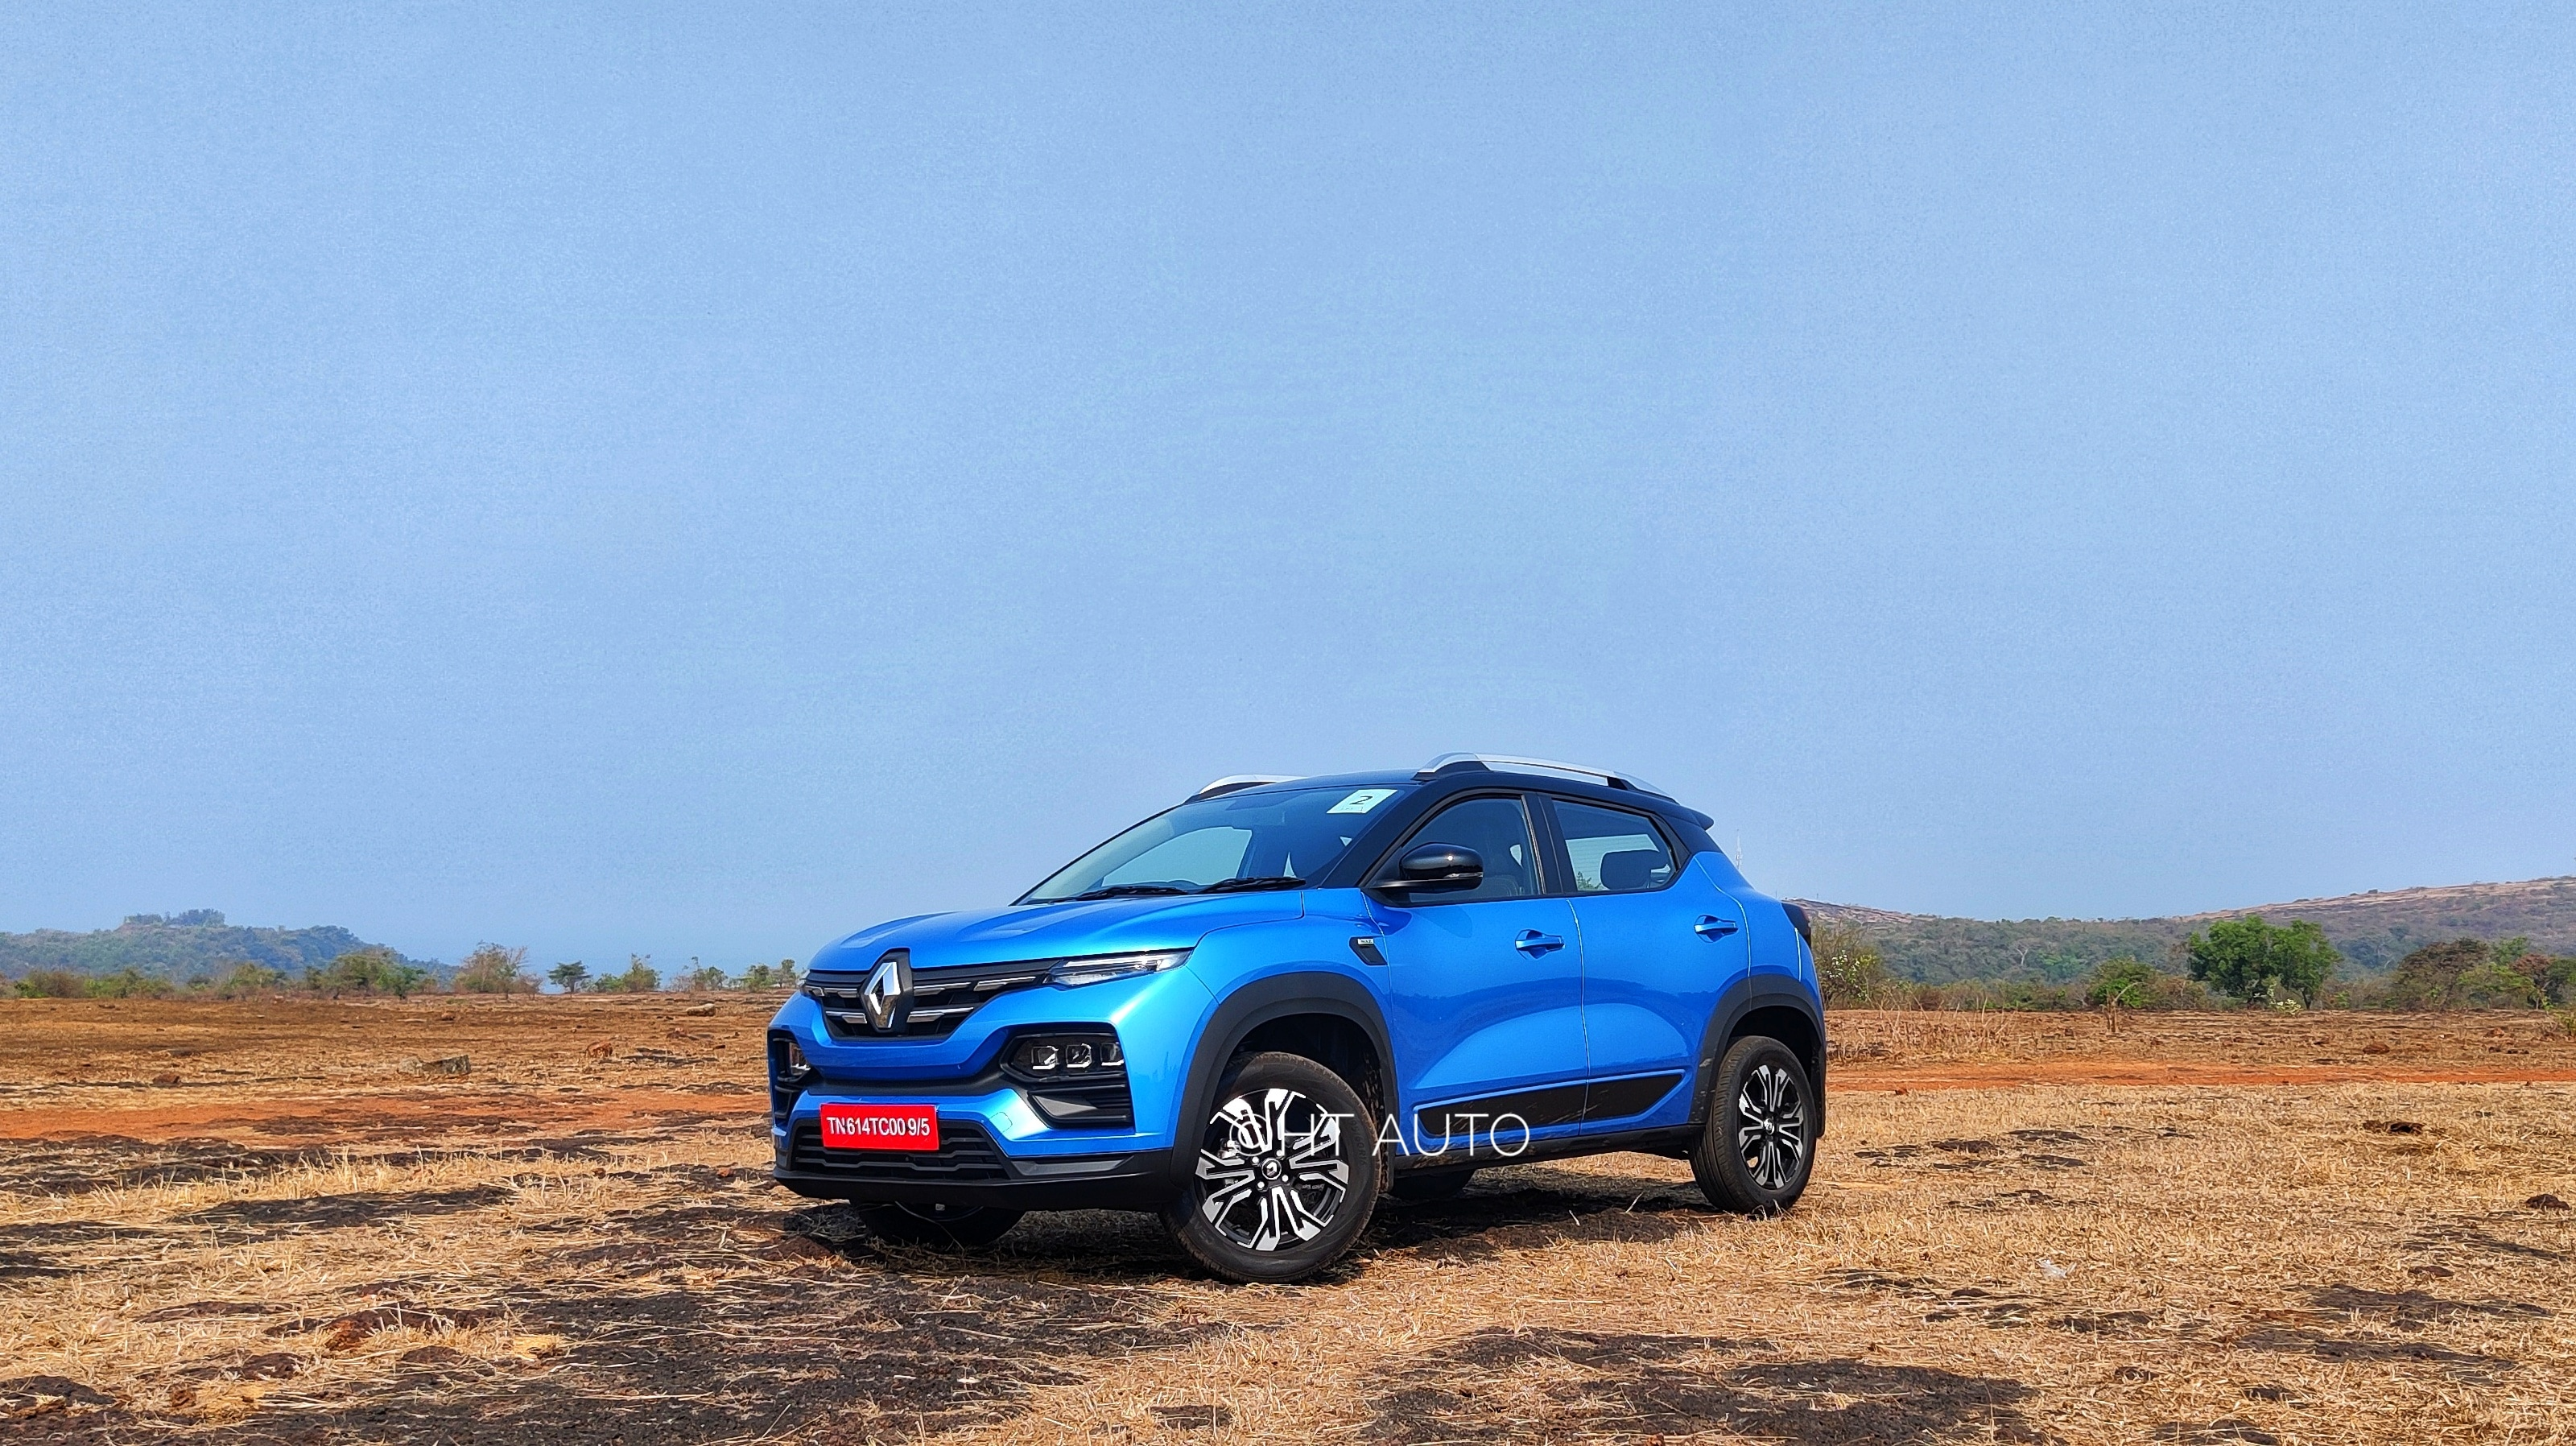 Kiger may clearly have a similar face to Kwid but there's much happening elsewhere to give it its own unique identity. (HT Auto/Sabyasachi Dasgupta)